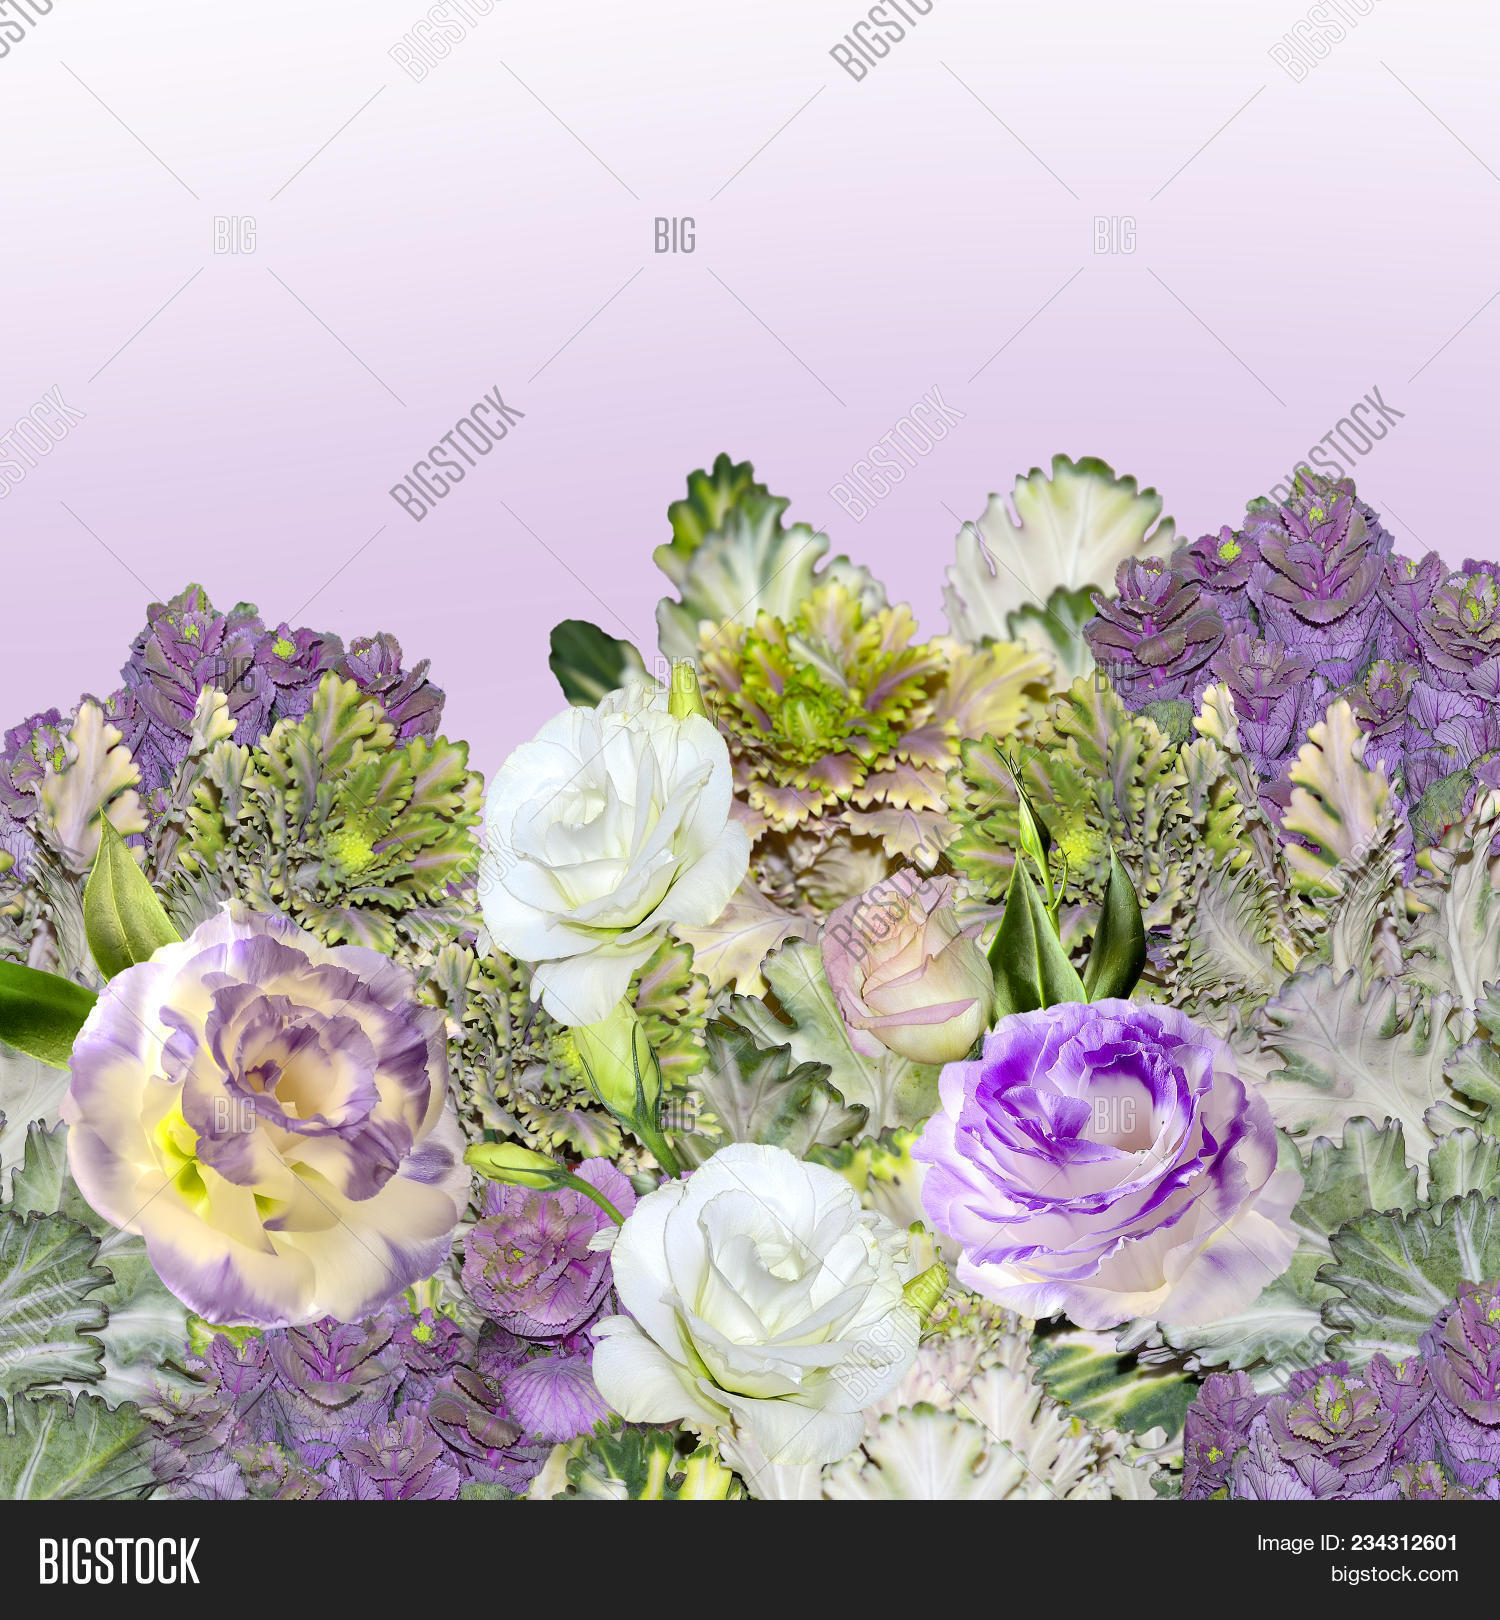 Floral Border Bouquet Image Photo Free Trial Bigstock